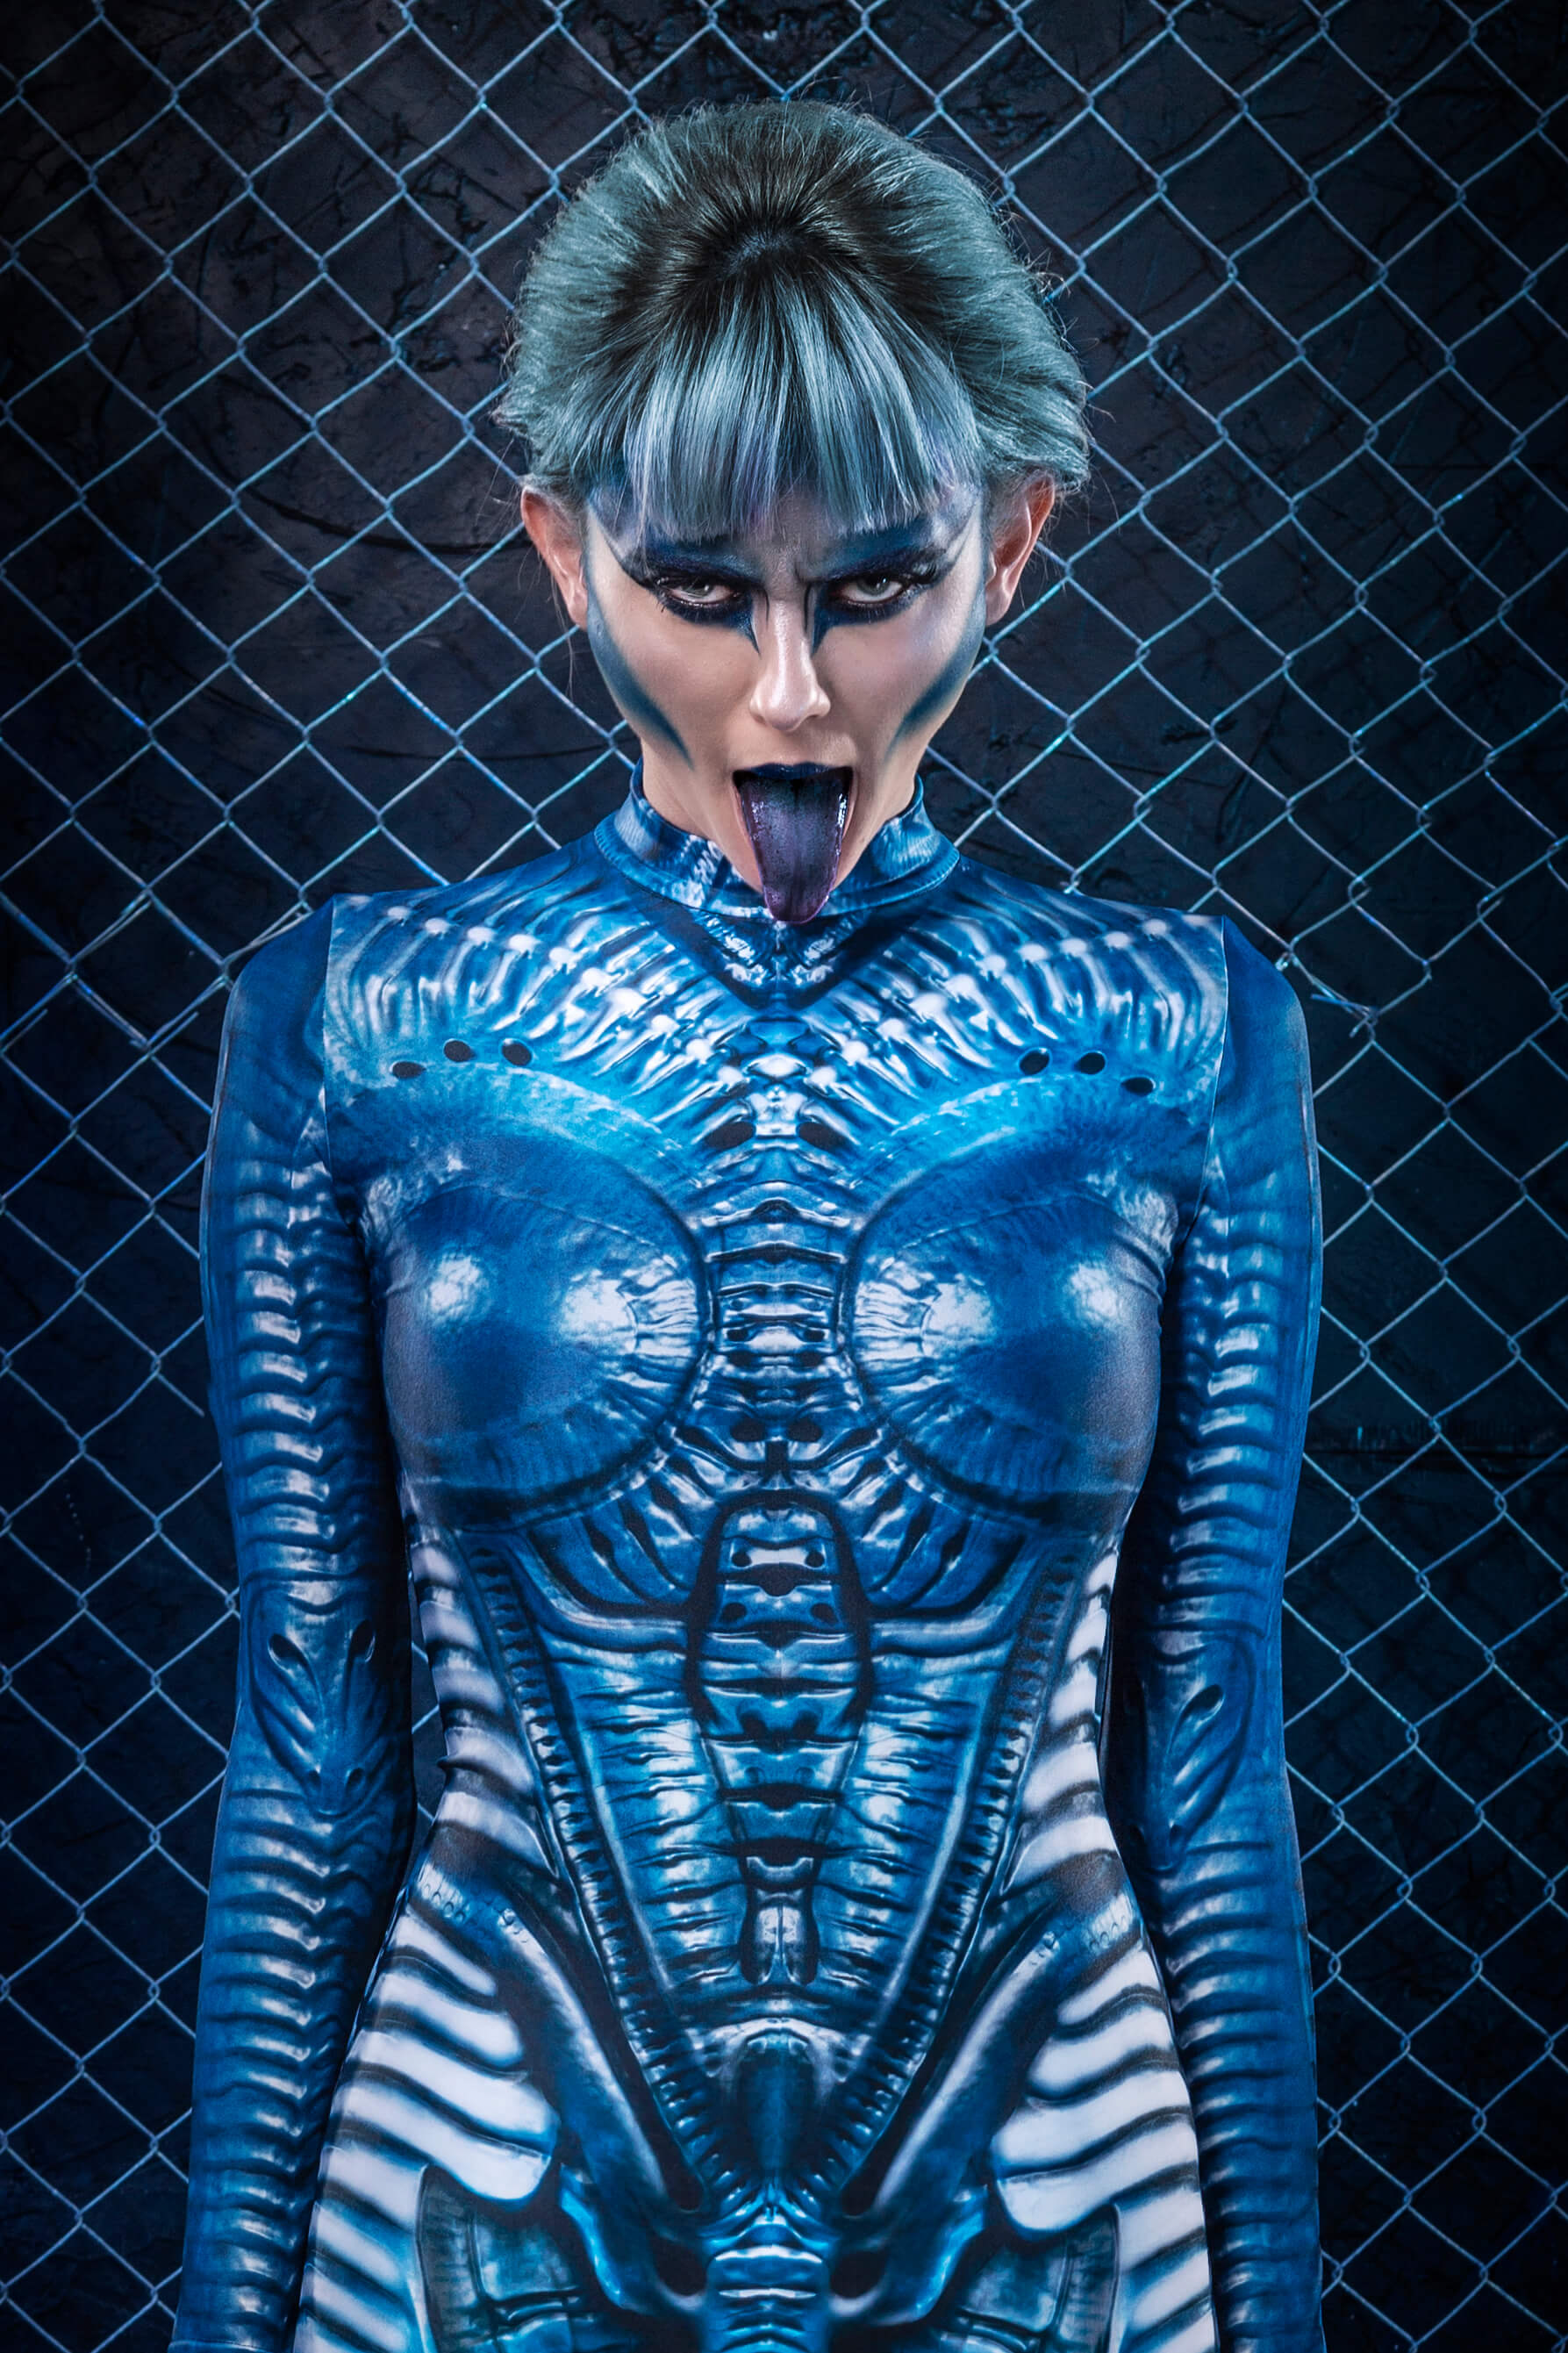 Best Halloween Costumes Women 2019 - Scary Cool Unique Halloween Costume Adults